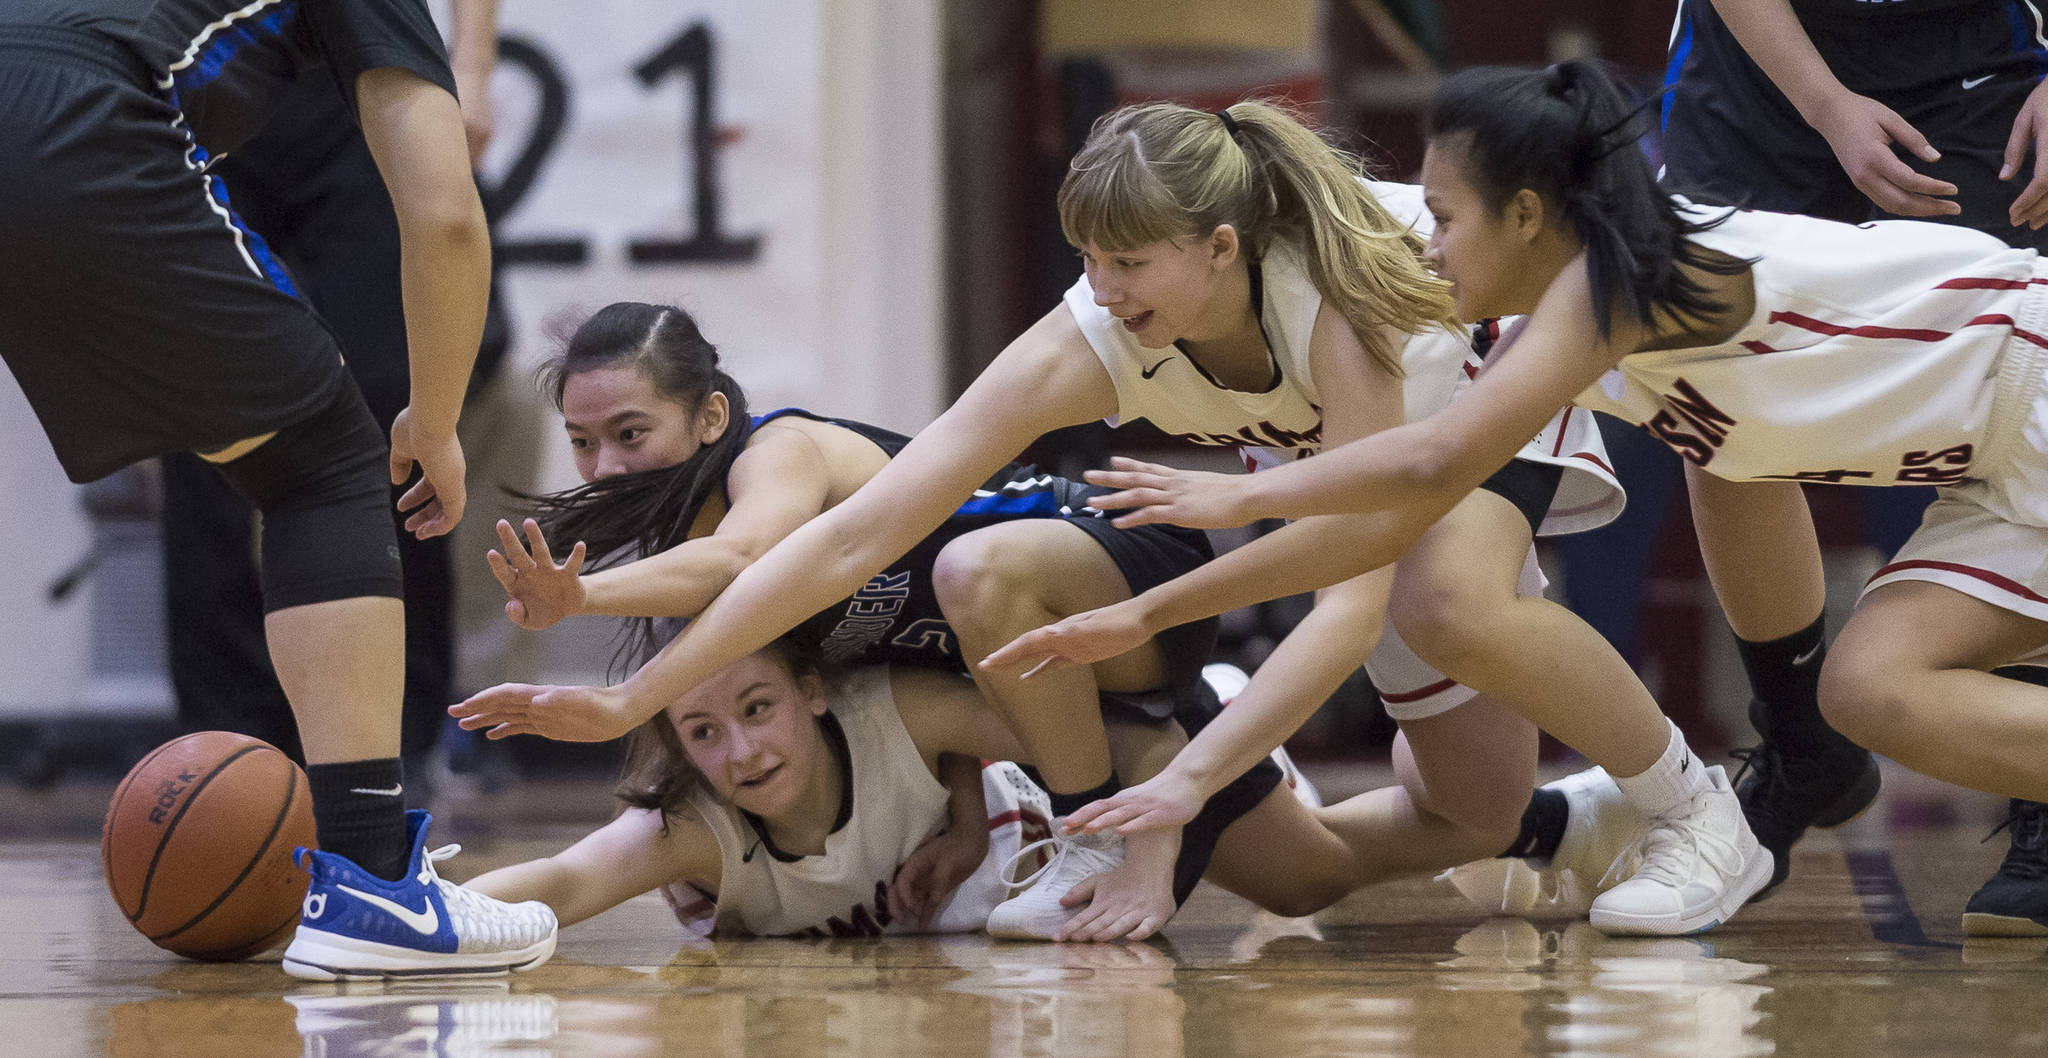 Thunder Mountain's Kyaye Garcia, left, dives for a loose ball against Juneau-Douglas' Kiana Potter, bottom left, Caitlin Pusich and Alyxn Bohulano, right, at JDHS on Friday, March 3, 2018. JDHS won 53-33.